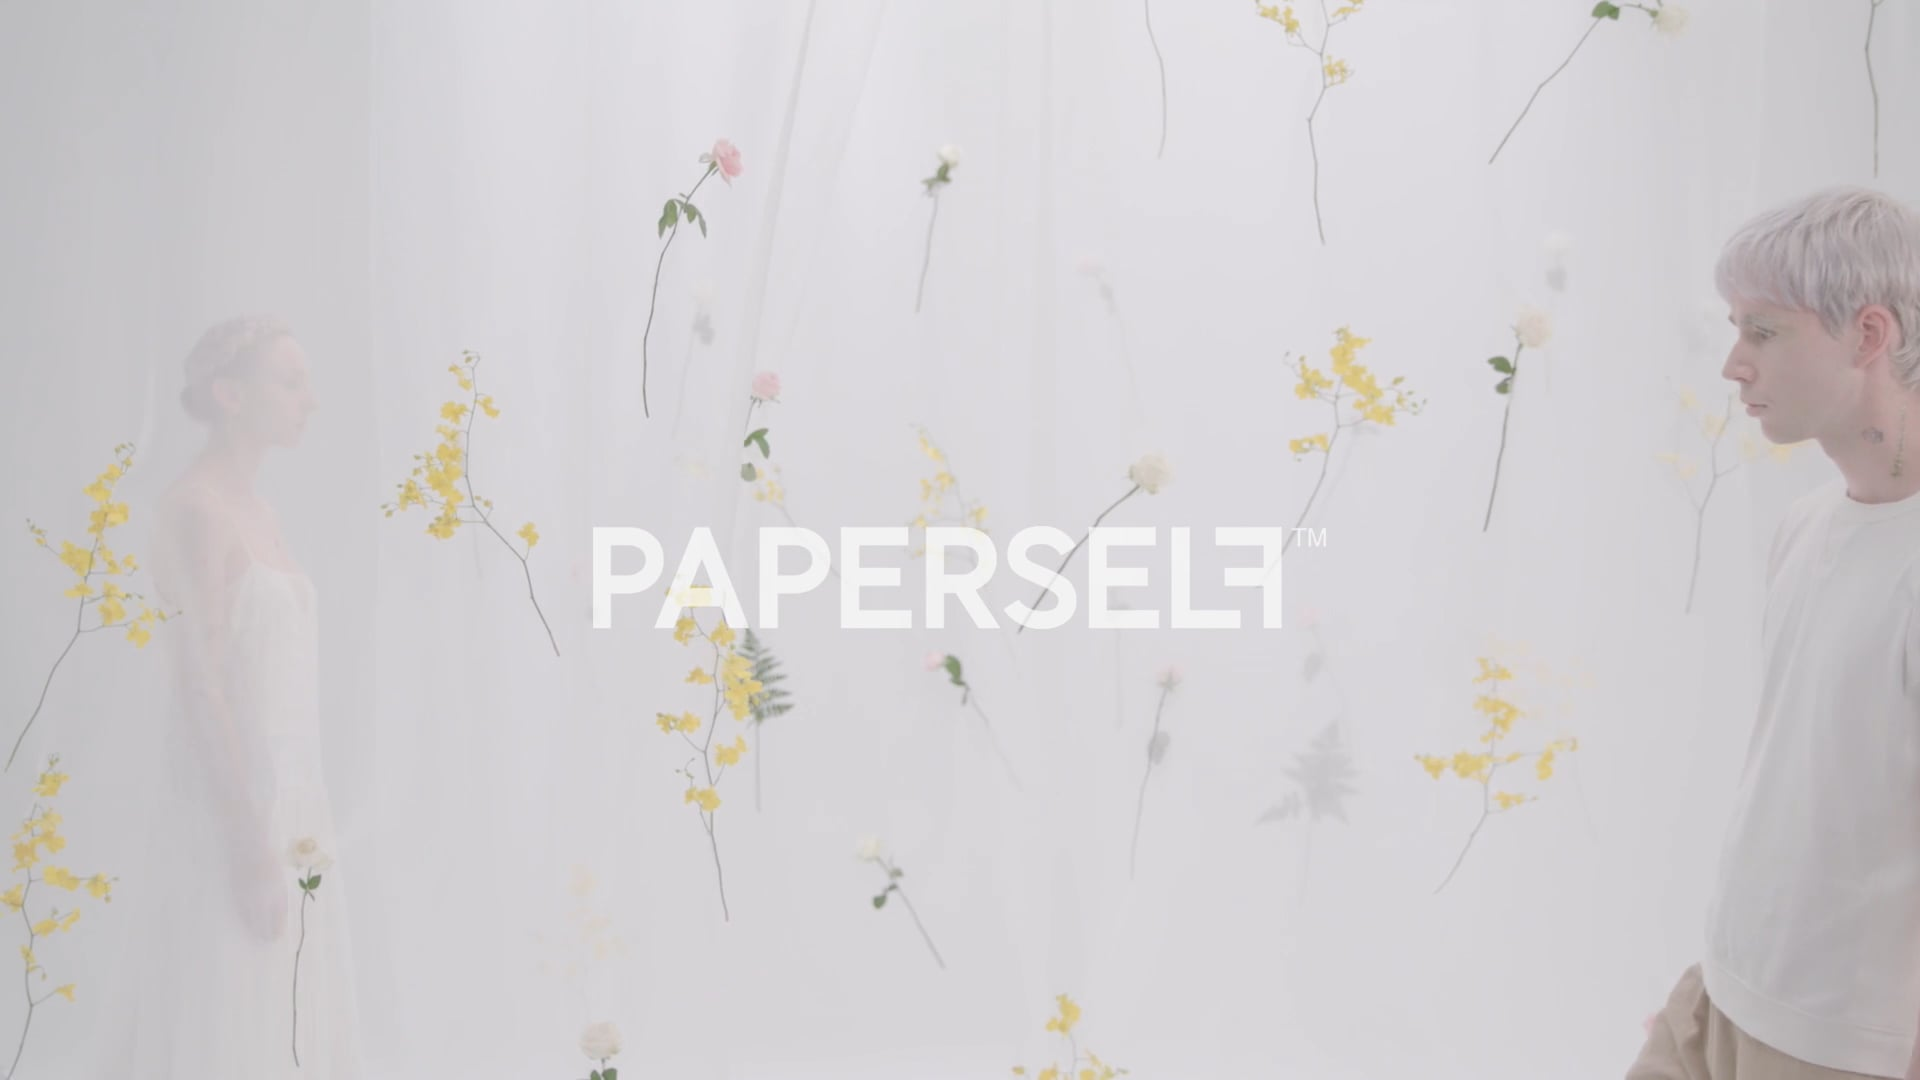 paperself tattoo